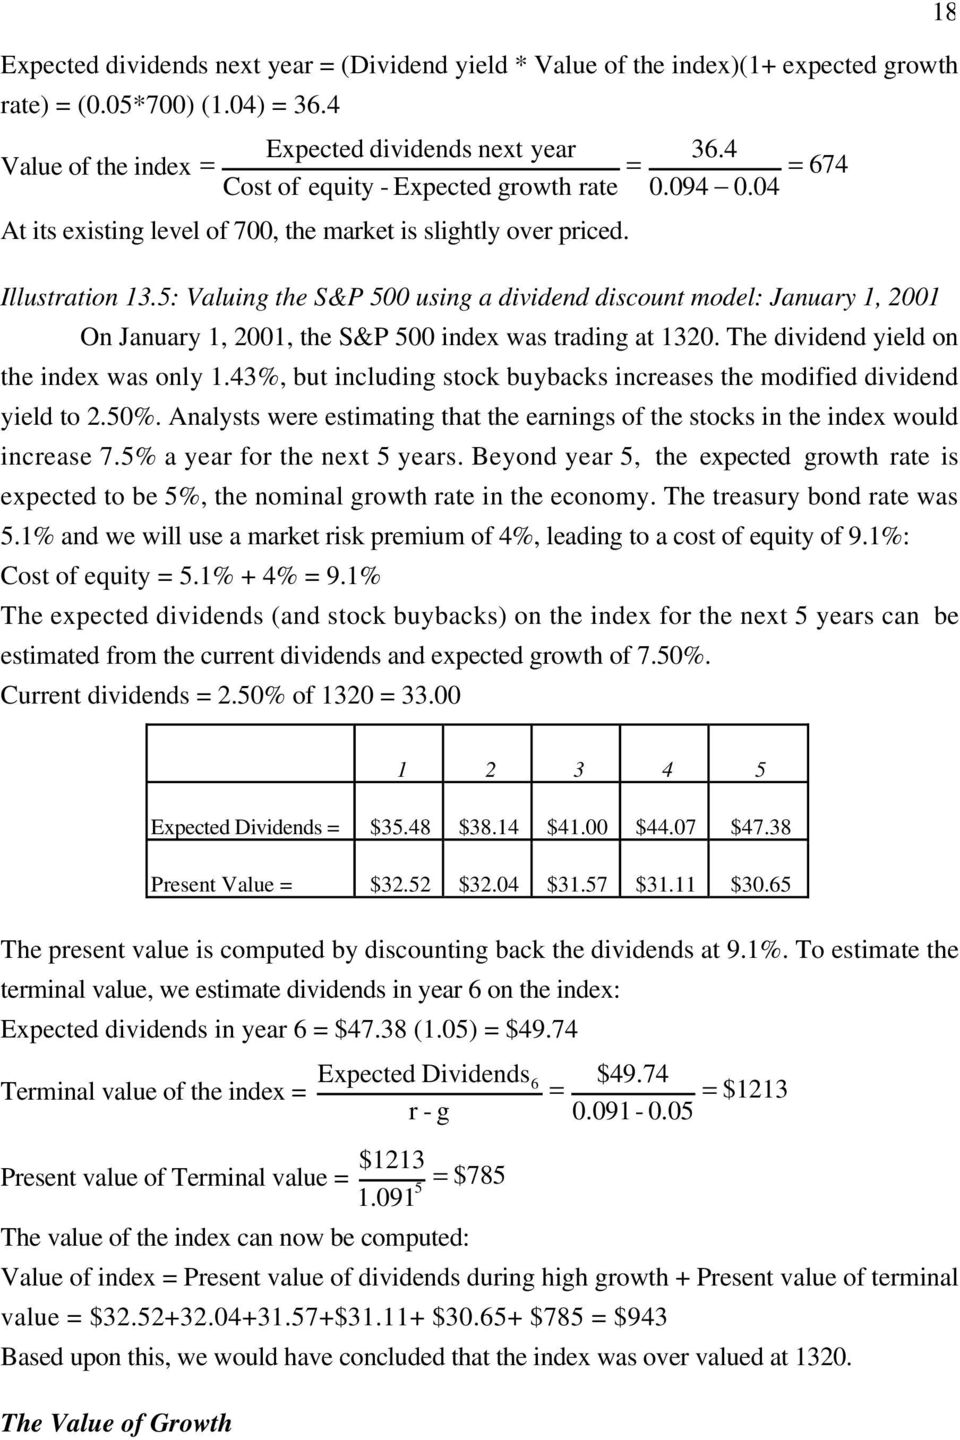 5: Valuing the S&P 500 using a dividend discount model: January 1, 2001 On January 1, 2001, the S&P 500 index was trading at 1320. The dividend yield on the index was only 1.